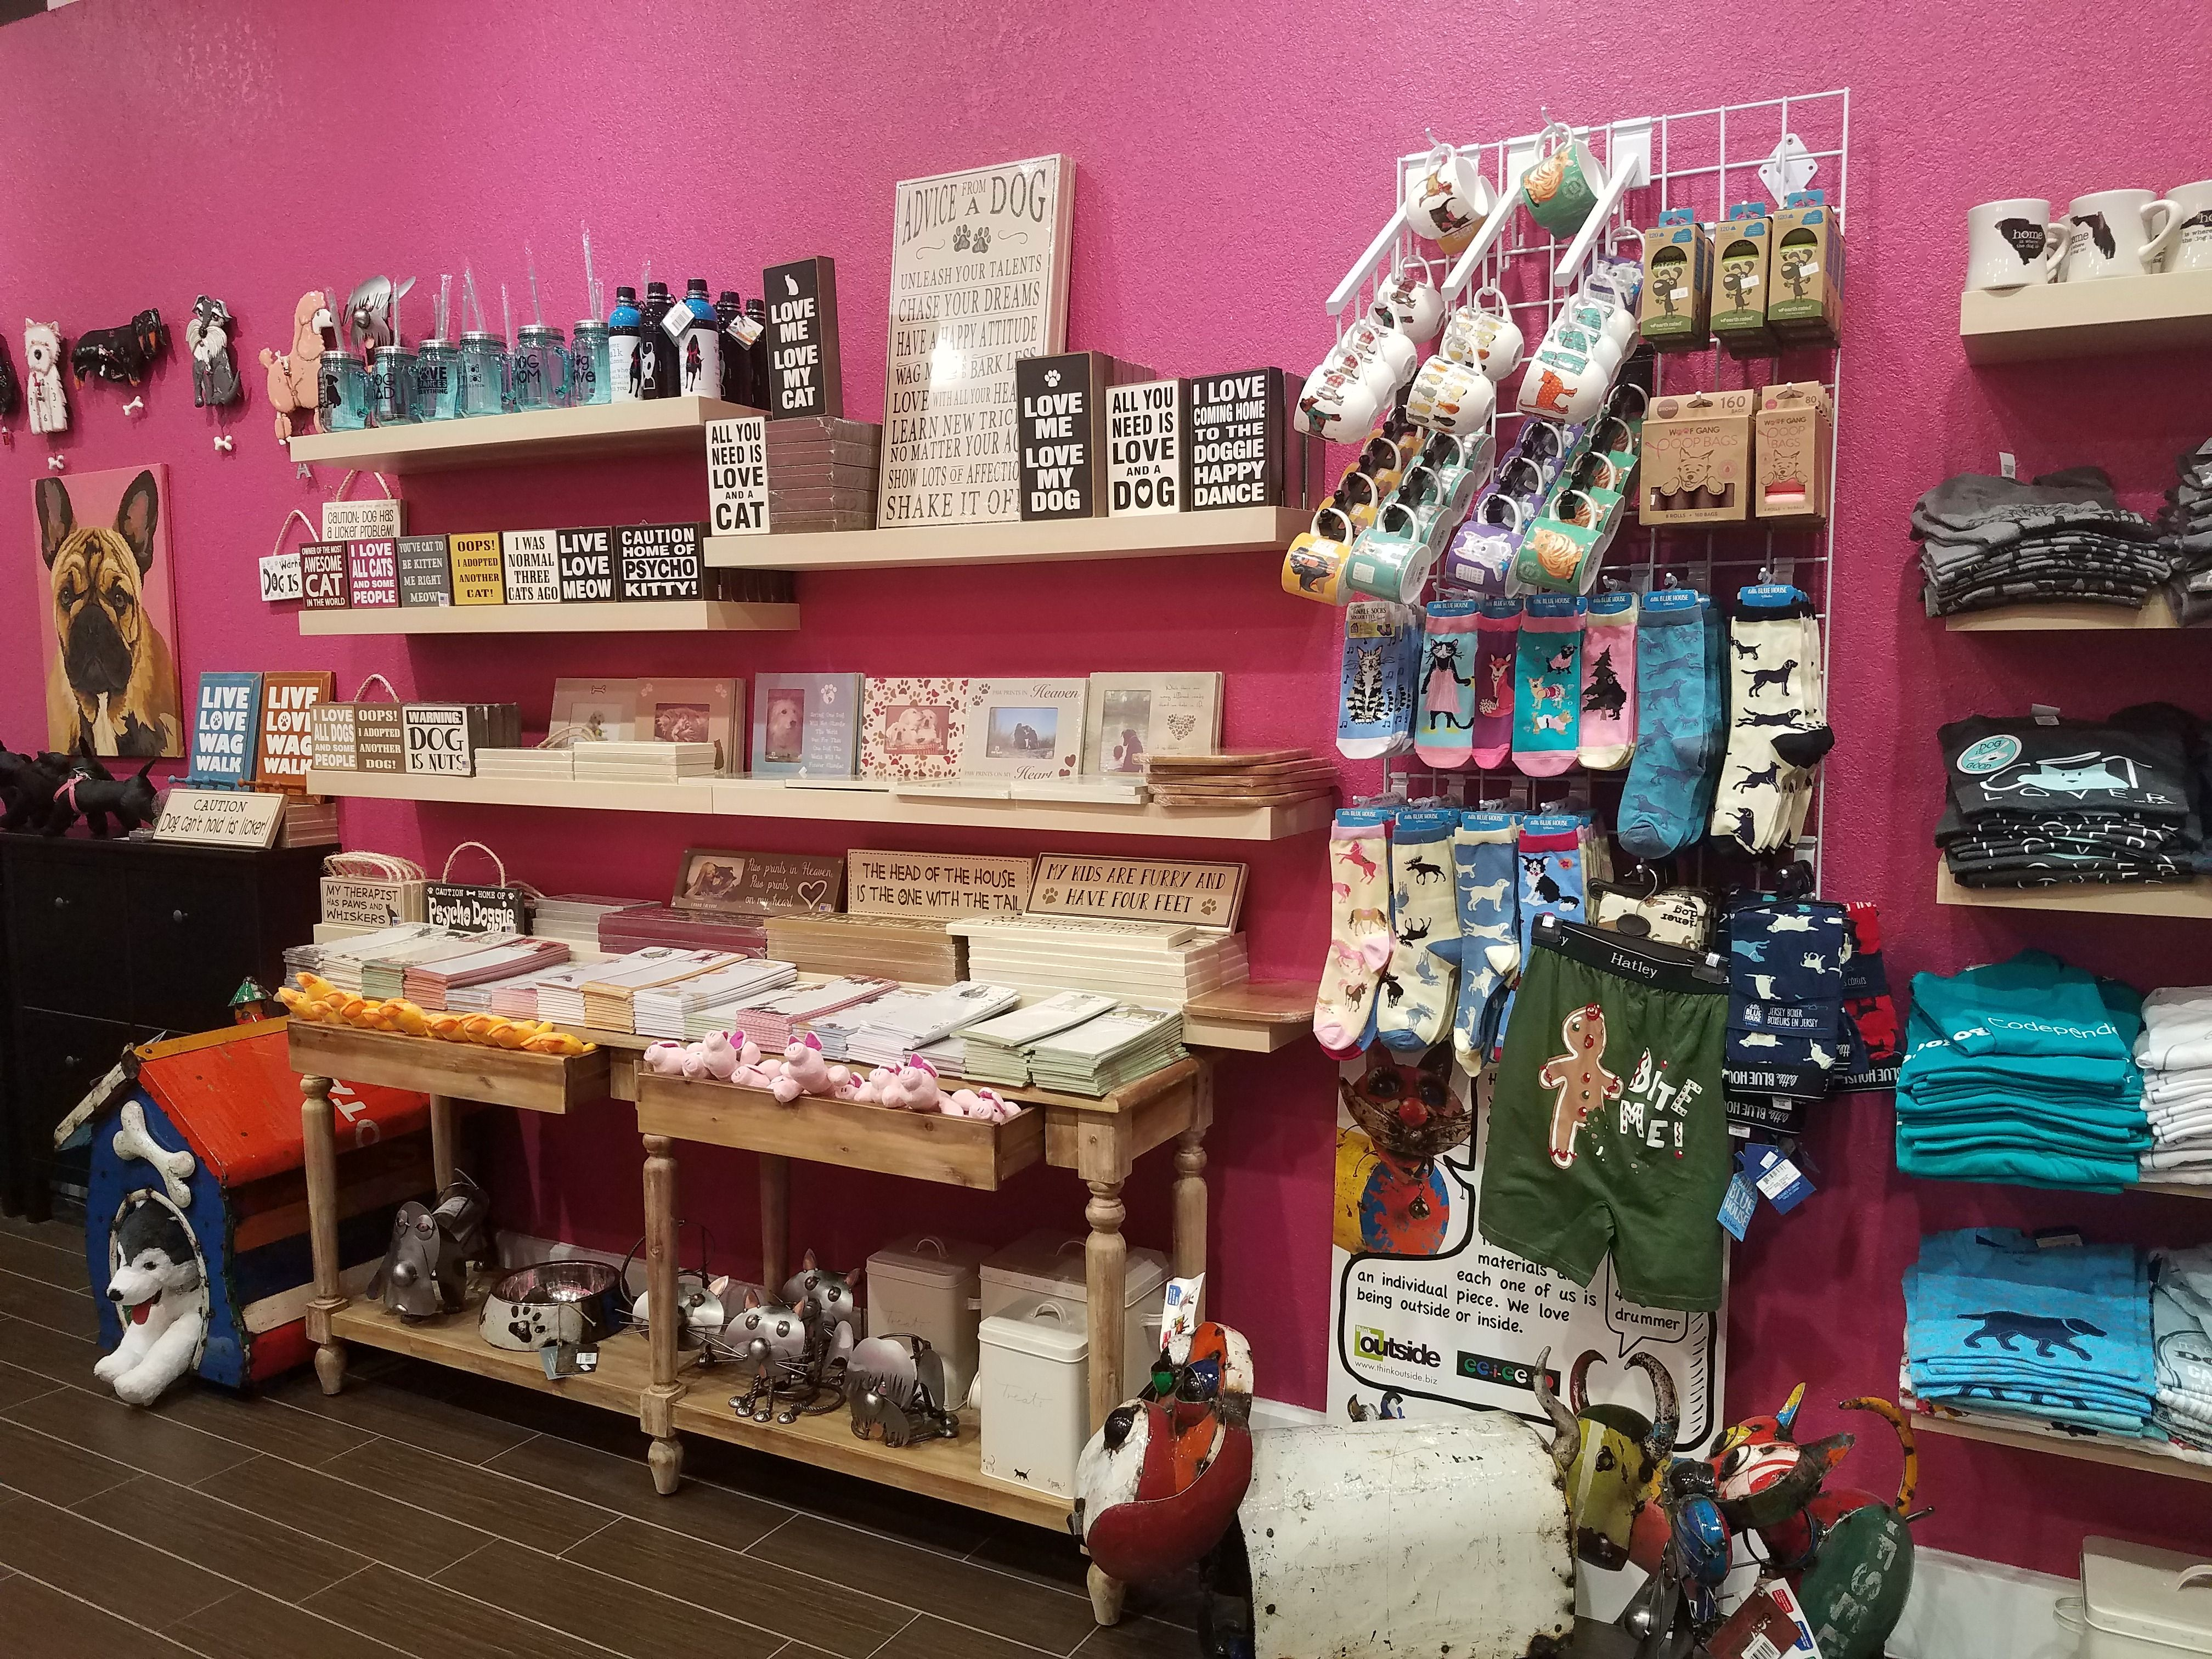 Woof Gang Bakery Florida Mall has some pawesome home decor